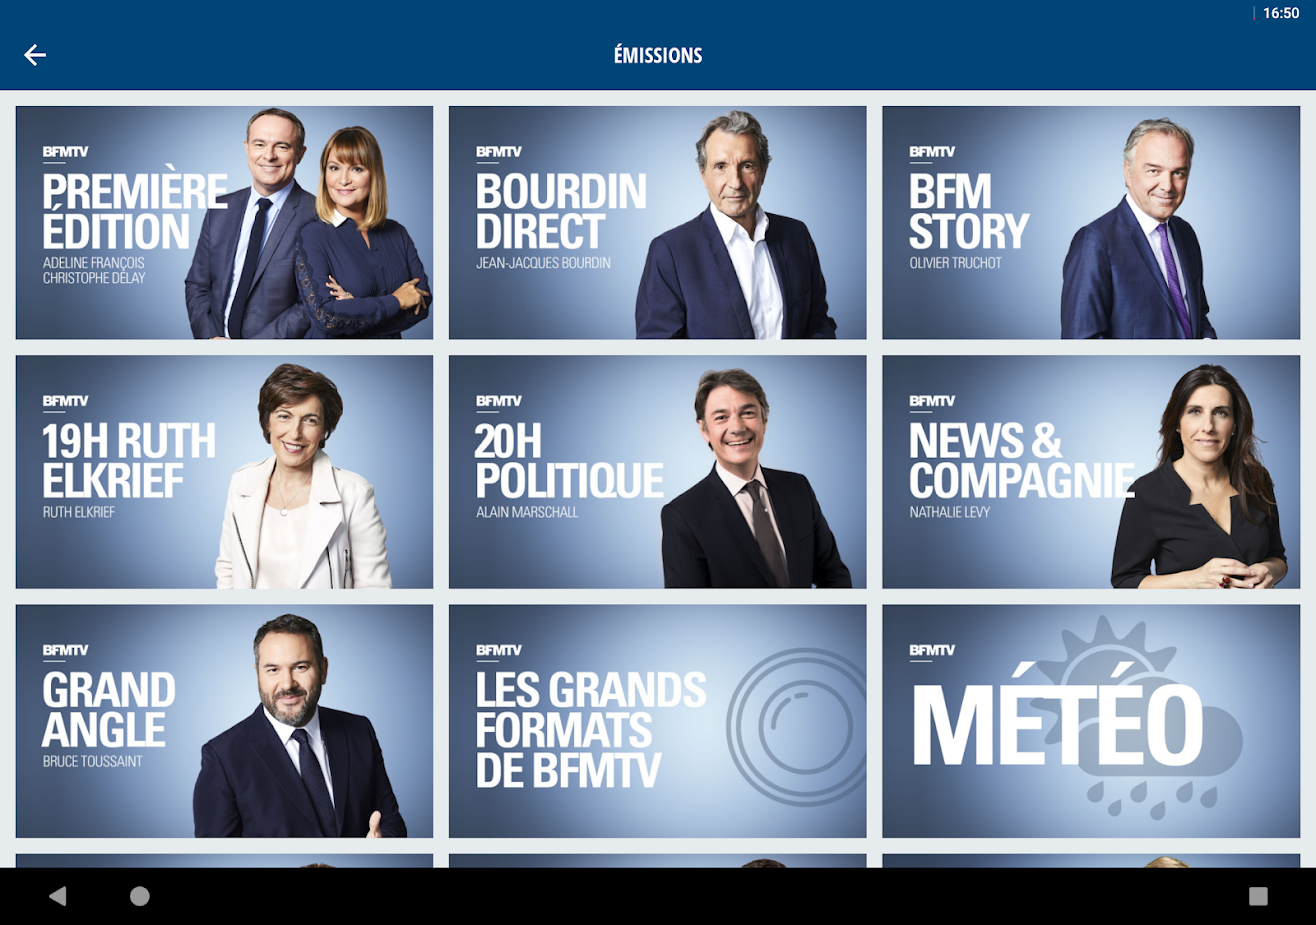 Freebox: what solutions to continue watching BFMTV and RMC Découverte?